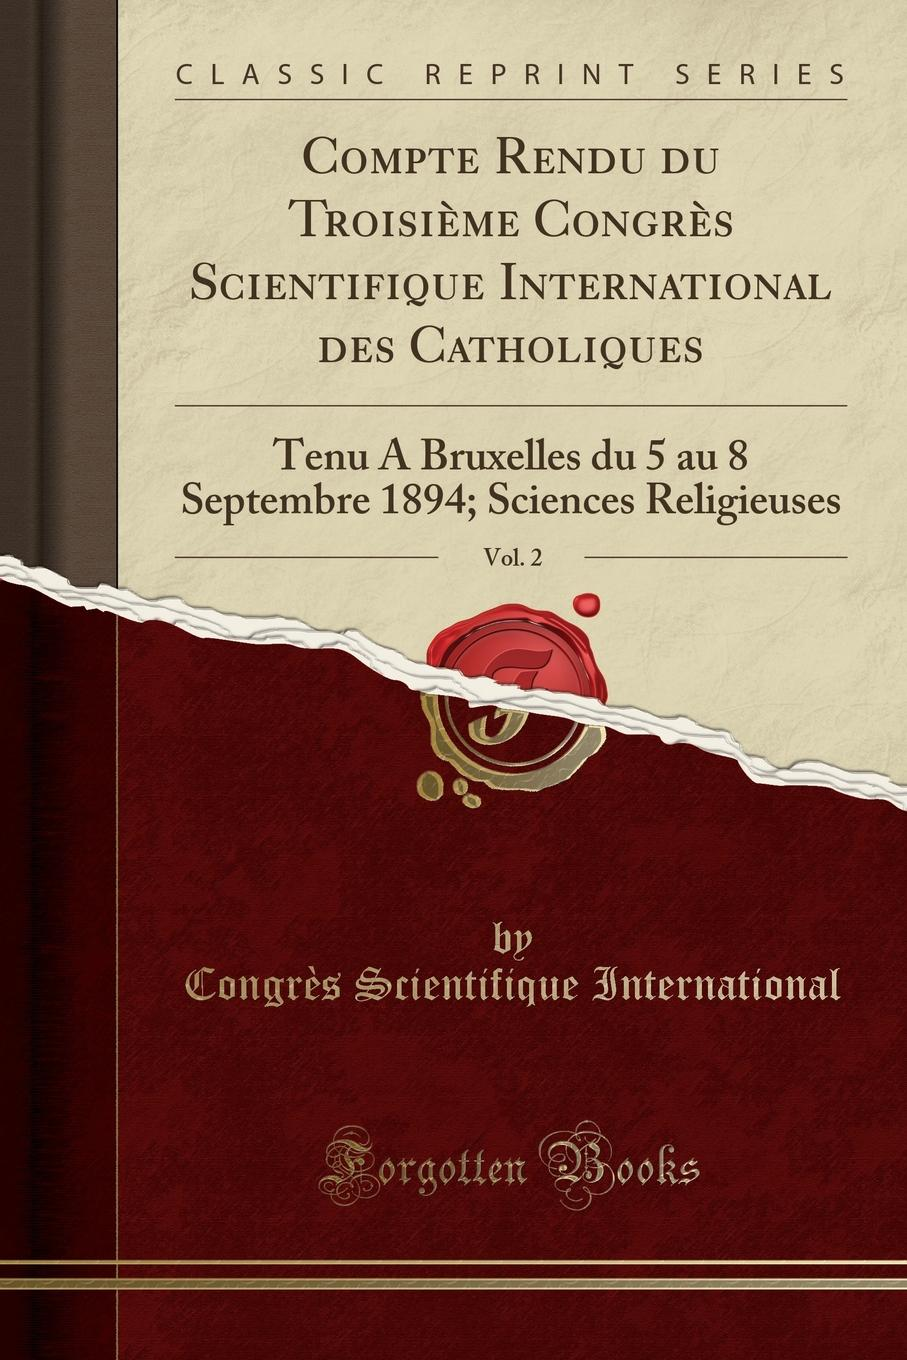 Congrès Scientifique International Compte Rendu du Troisieme Congres Scientifique International des Catholiques, Vol. 2. Tenu A Bruxelles du 5 au 8 Septembre 1894; Sciences Religieuses (Classic Reprint) institut colonial international les droits de chasse dans les colonies et la conservation de la faune indigene vol 2 classic reprint